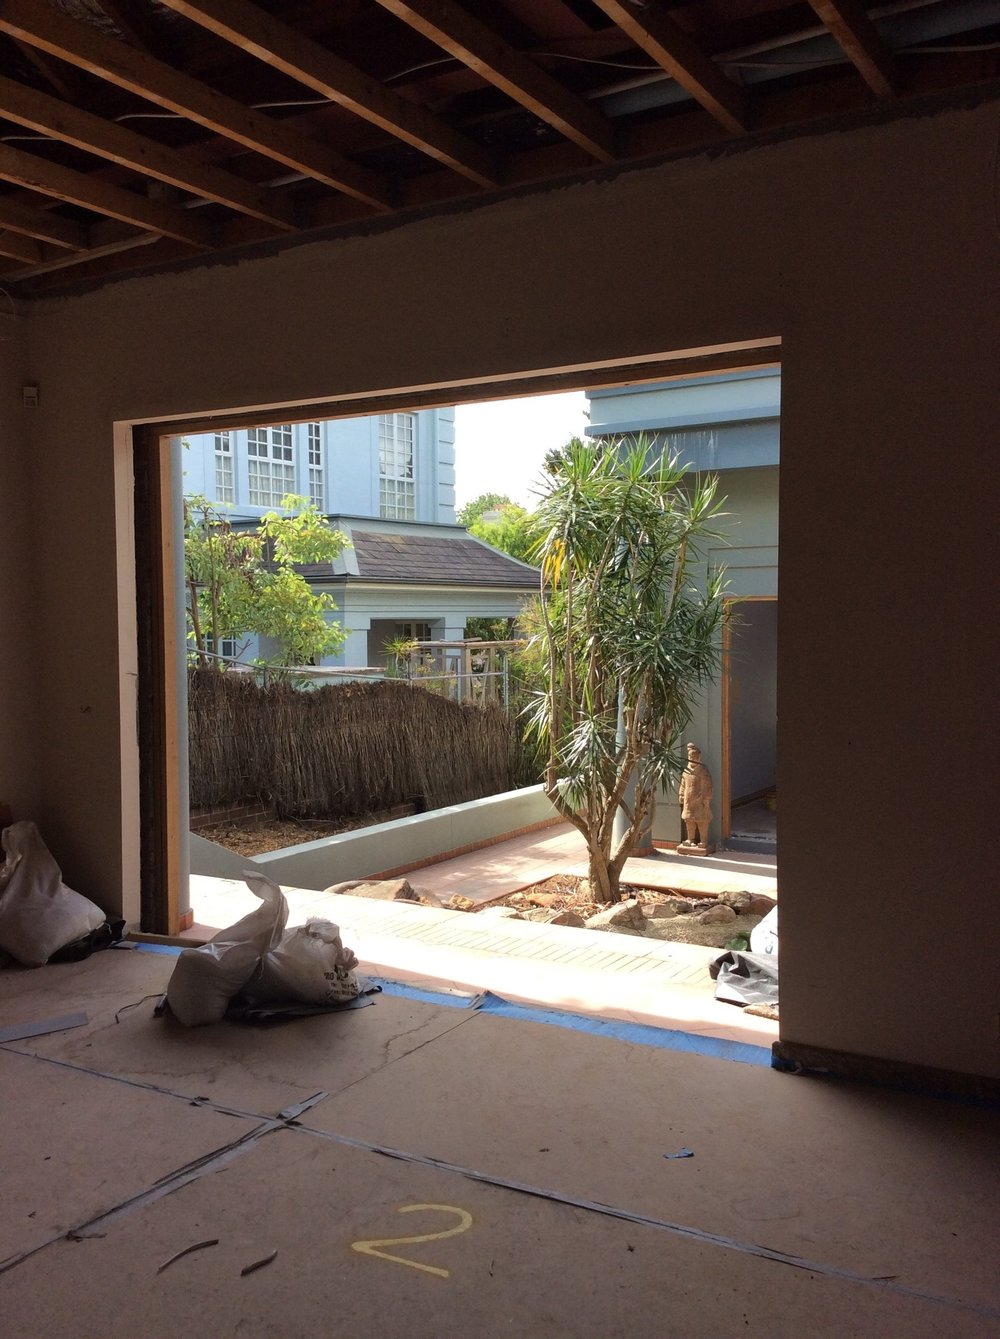 The internal courtyard is a natural suntrap, so we will be installing frameless glass windows to all sides to harness and embrace it's light and warmth. The landscaping is undergoing a re-fresh by Outdoor Establishments to make the space even more special.